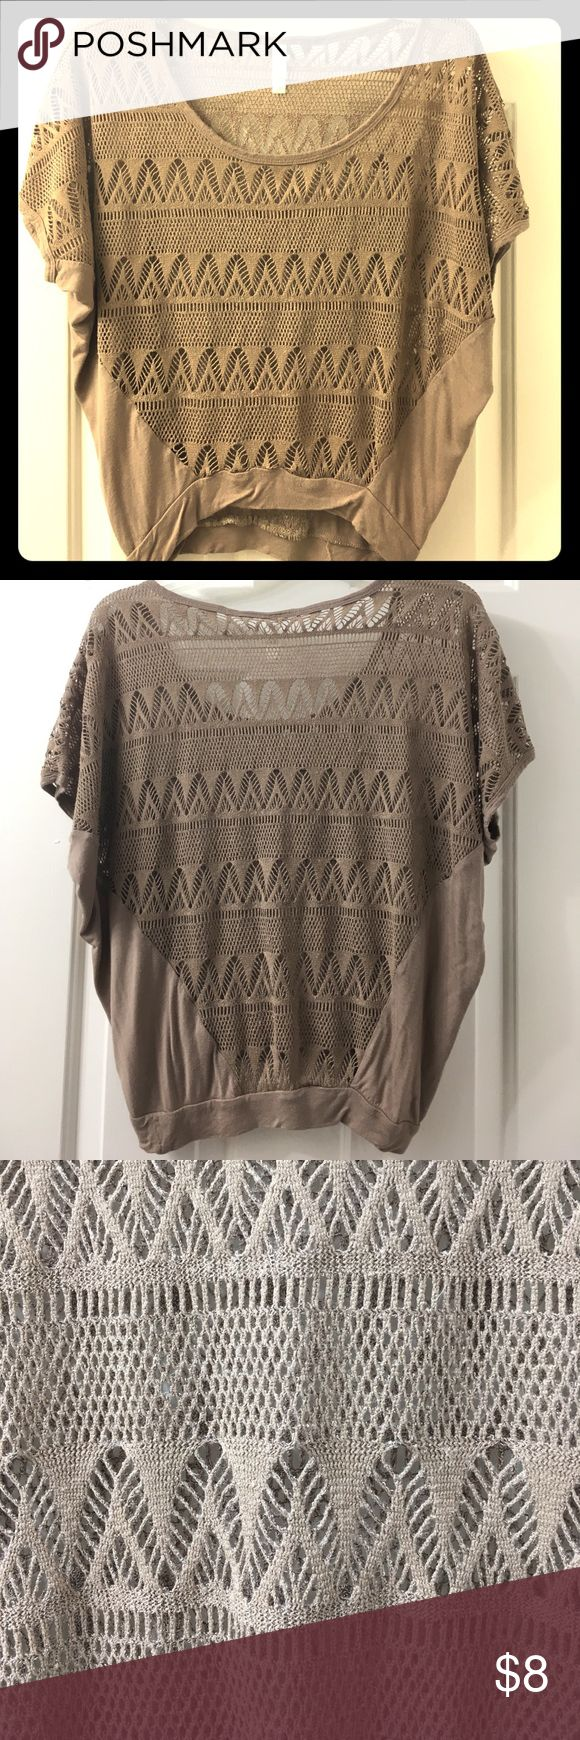 Boho slouchy top Taupe. Comfy. Crochet body is in great shape. Very very minor wear on the full fabric. Still in great shape. Xhilaration Tops